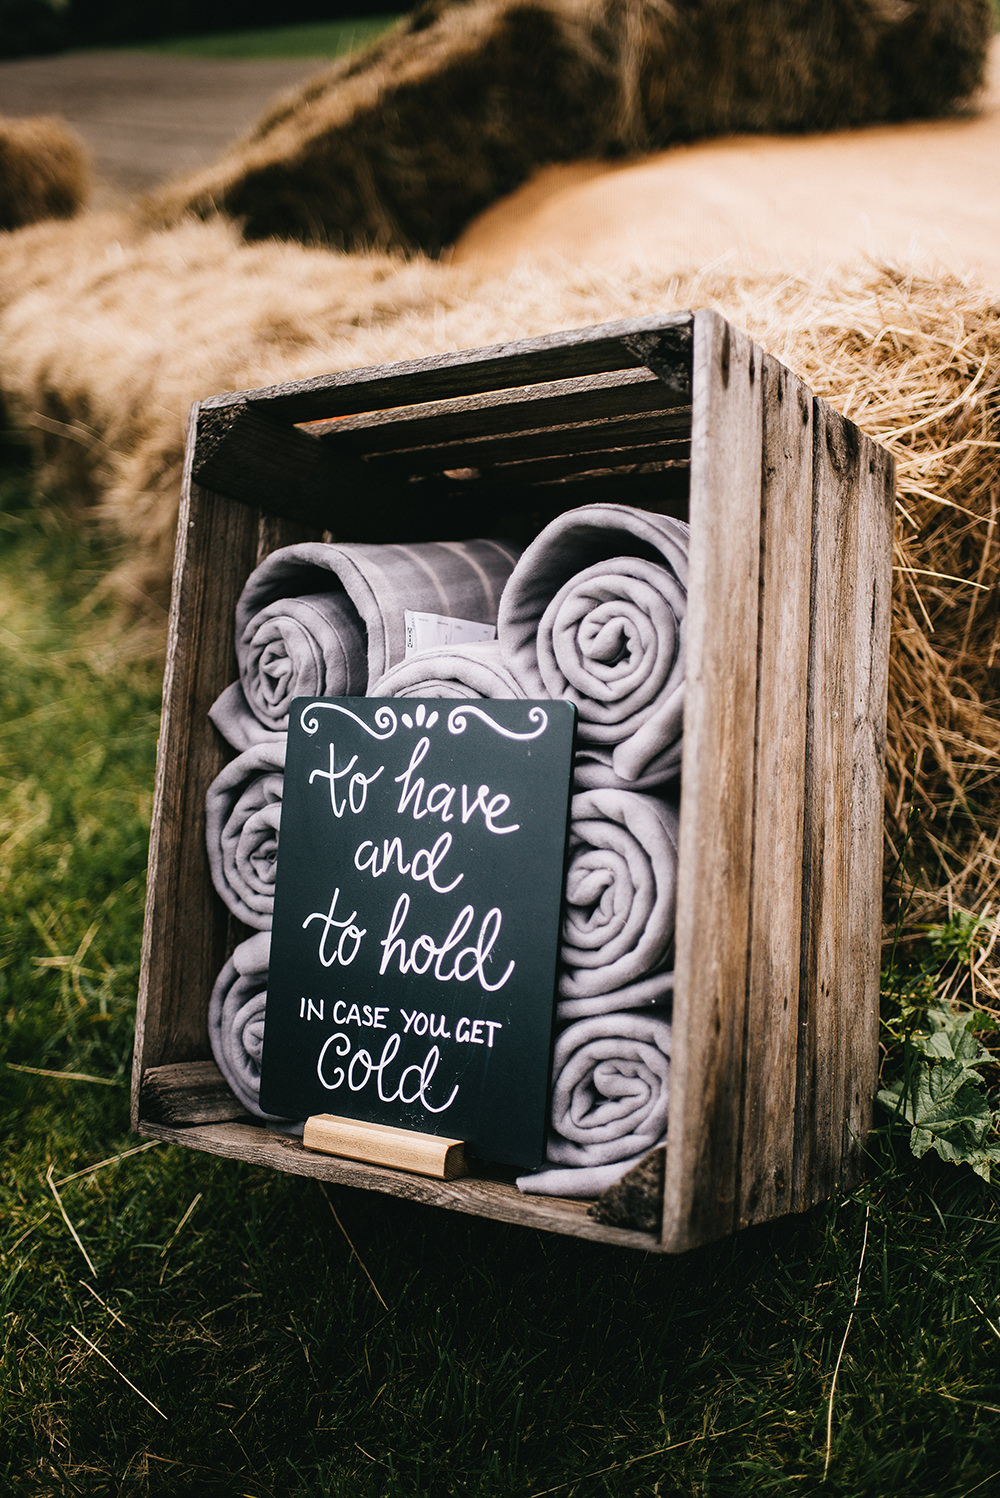 Blanket Box Wooden Crate Farm Wedding Alex Tenters Photography